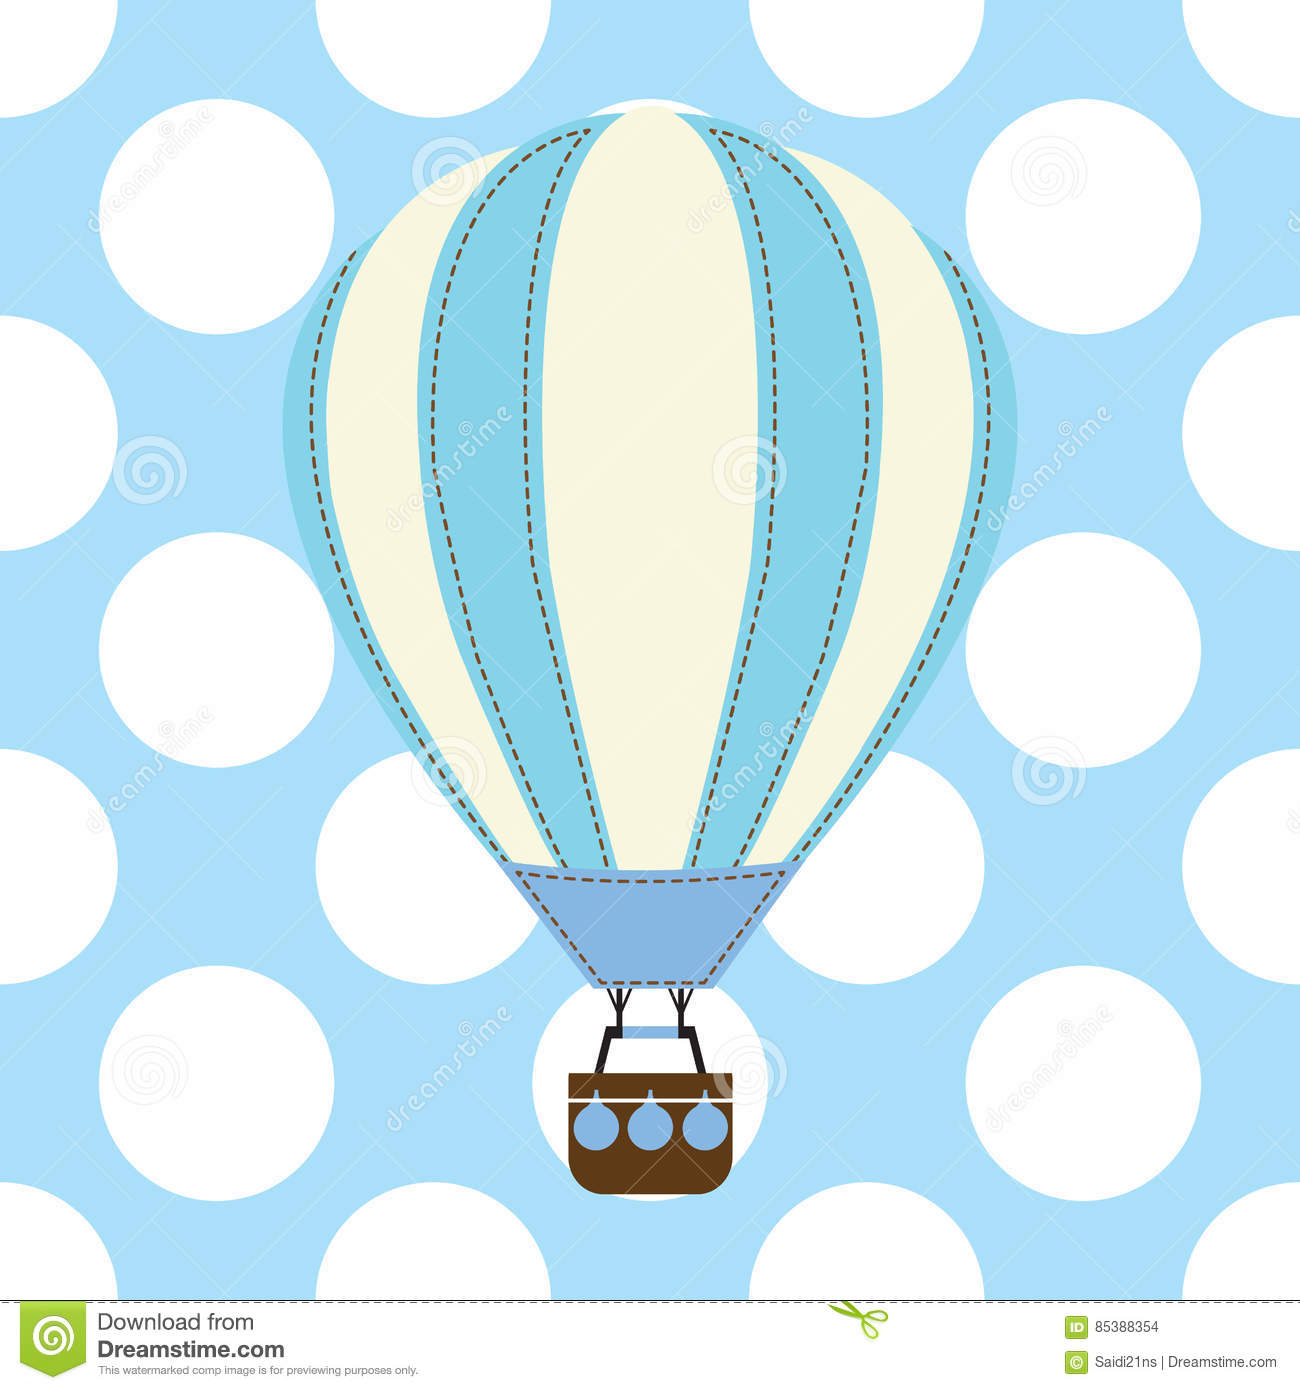 Baby shower card with cute hot air balloon on blue background